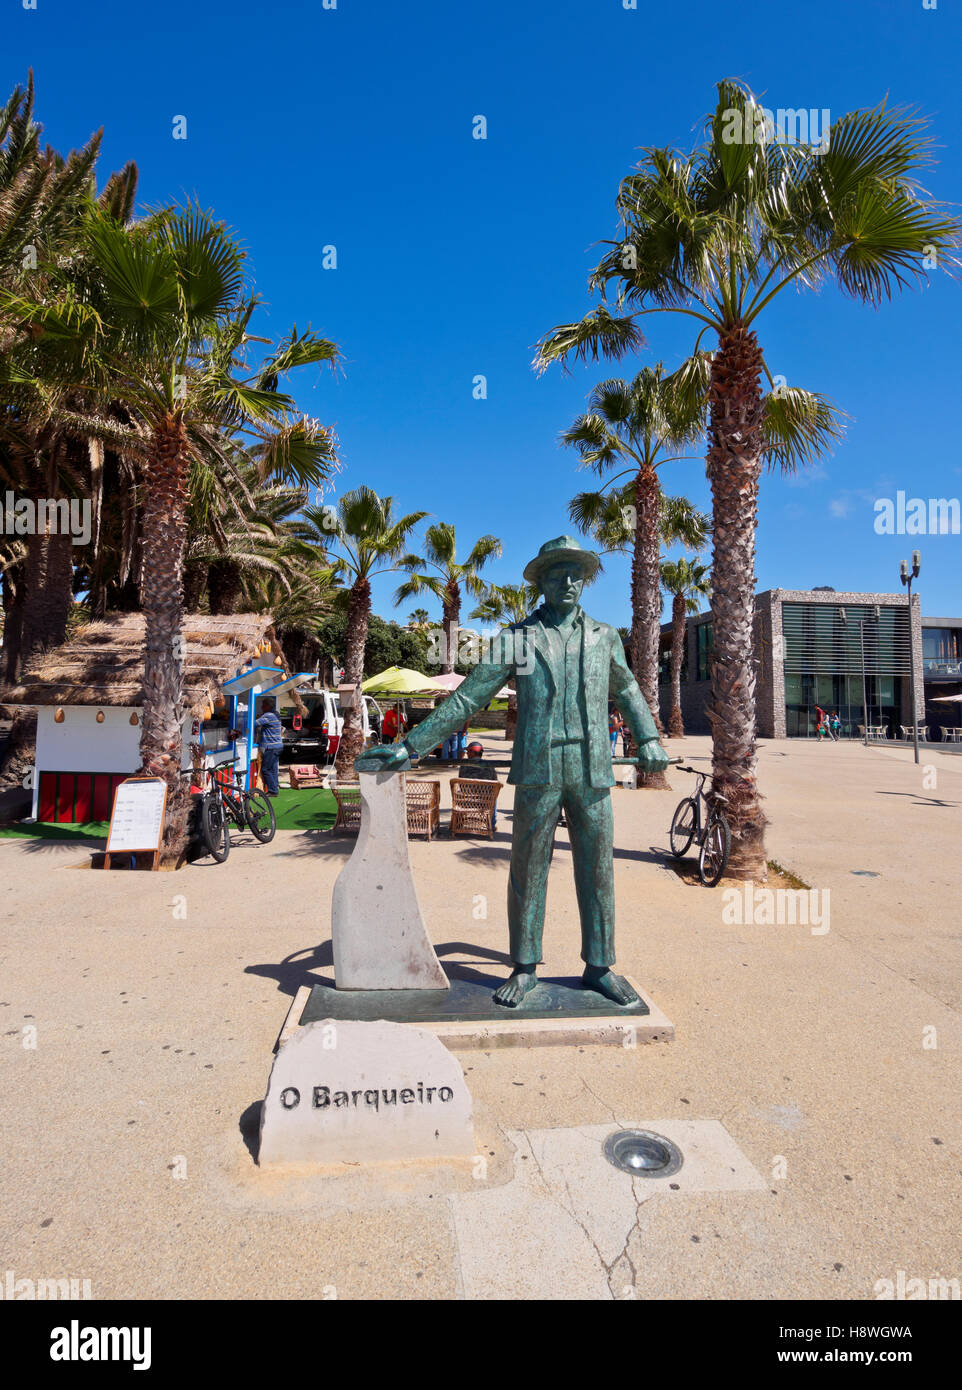 Portugal, Madeira Islands, Porto Santo, Vila Baleira, View of the statue of the boatman. - Stock Image